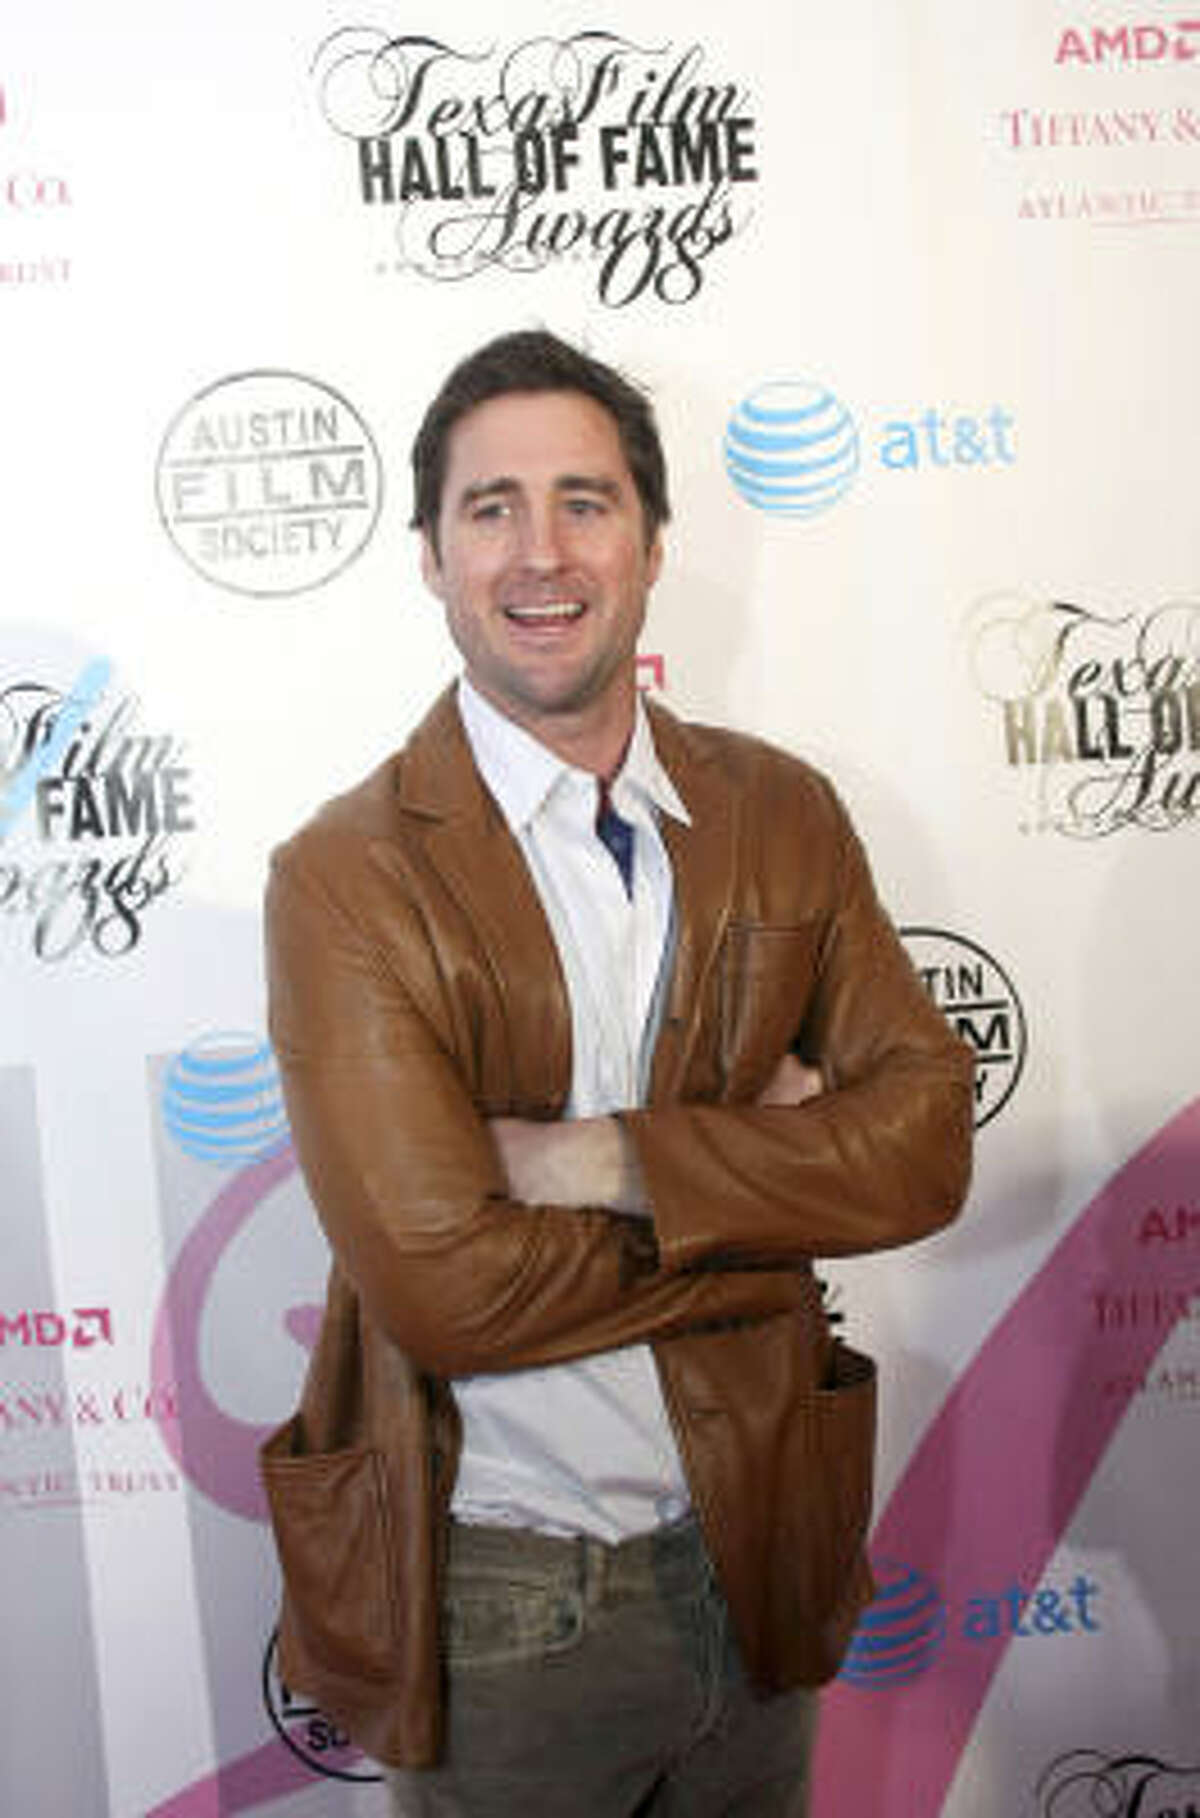 Luke Wilson arrives at the Texas Hall of Fame Awards, an event associated with SXSW's first night.